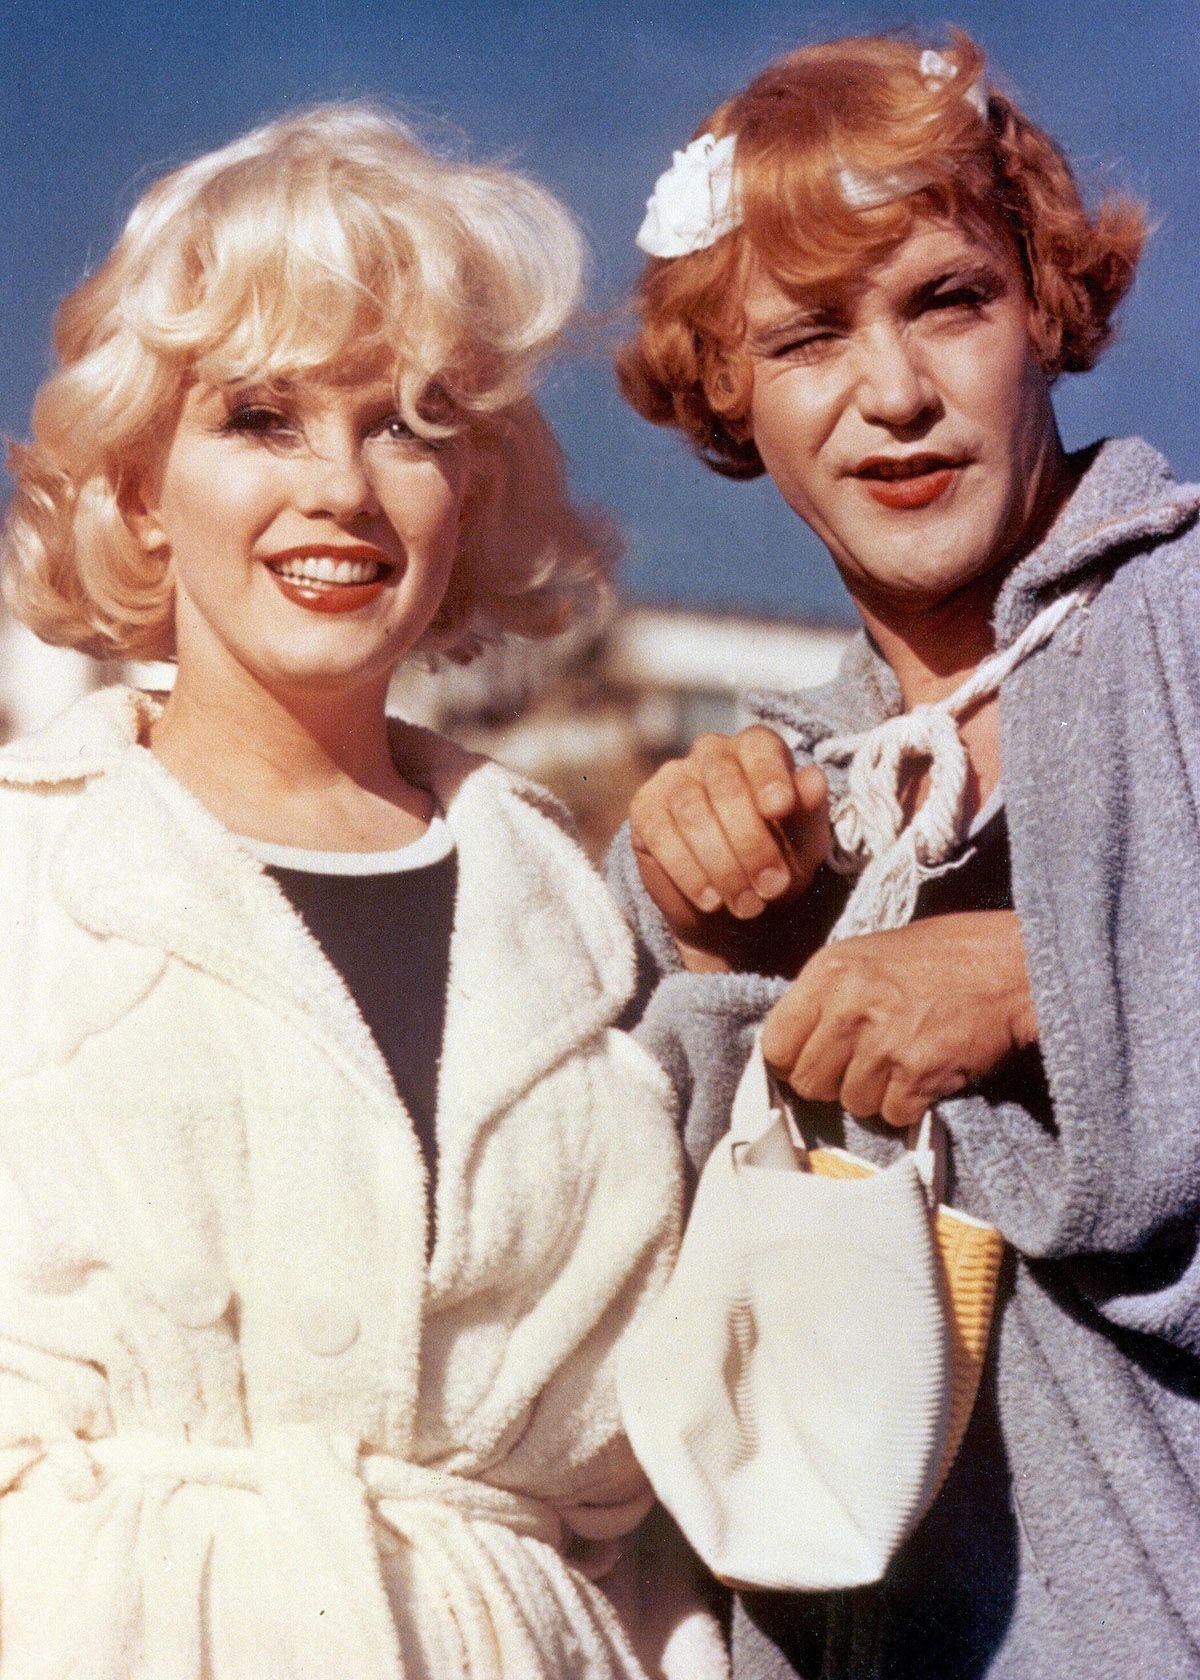 Marilyn Monroe And Jack Lemmon In Billy Wilder S Some Like It Hot